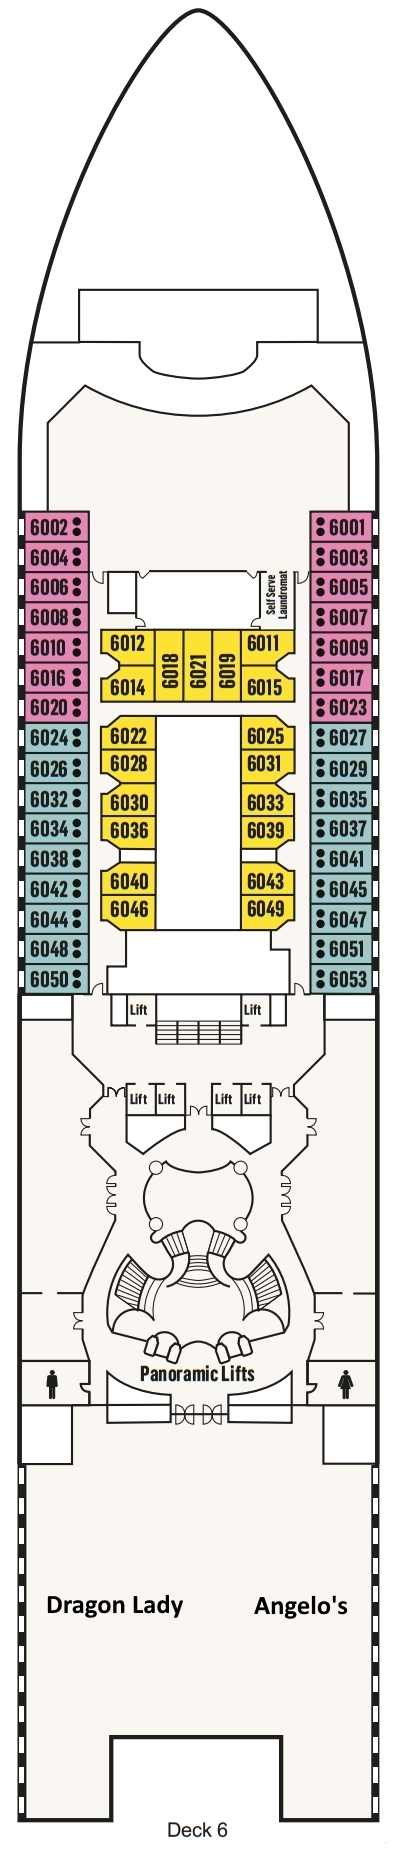 P&O- Pacific Explorer Deck 6 layout